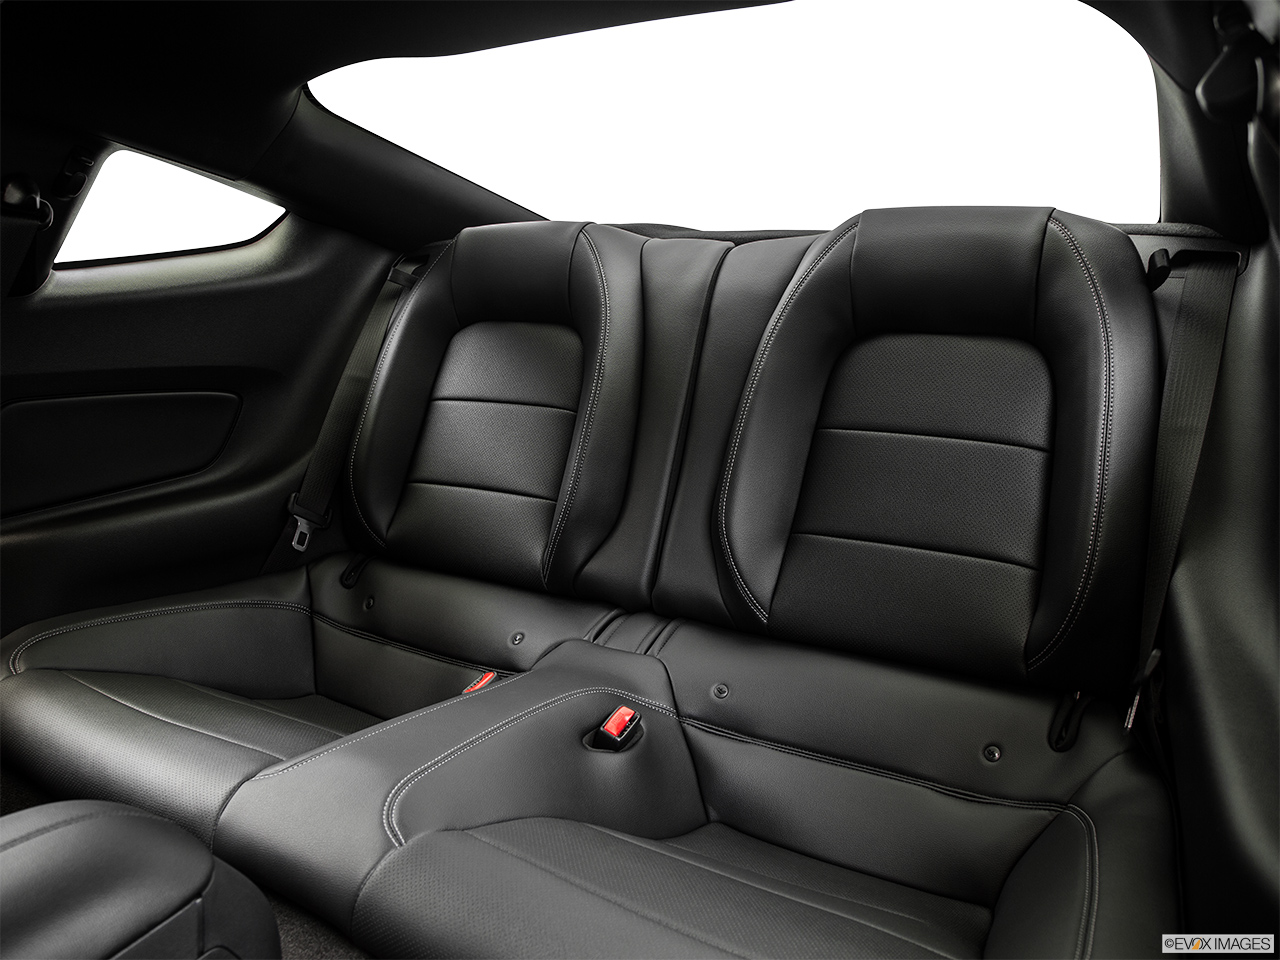 2015 Ford Mustang 2 Door Fastback Gt Rear Seats From